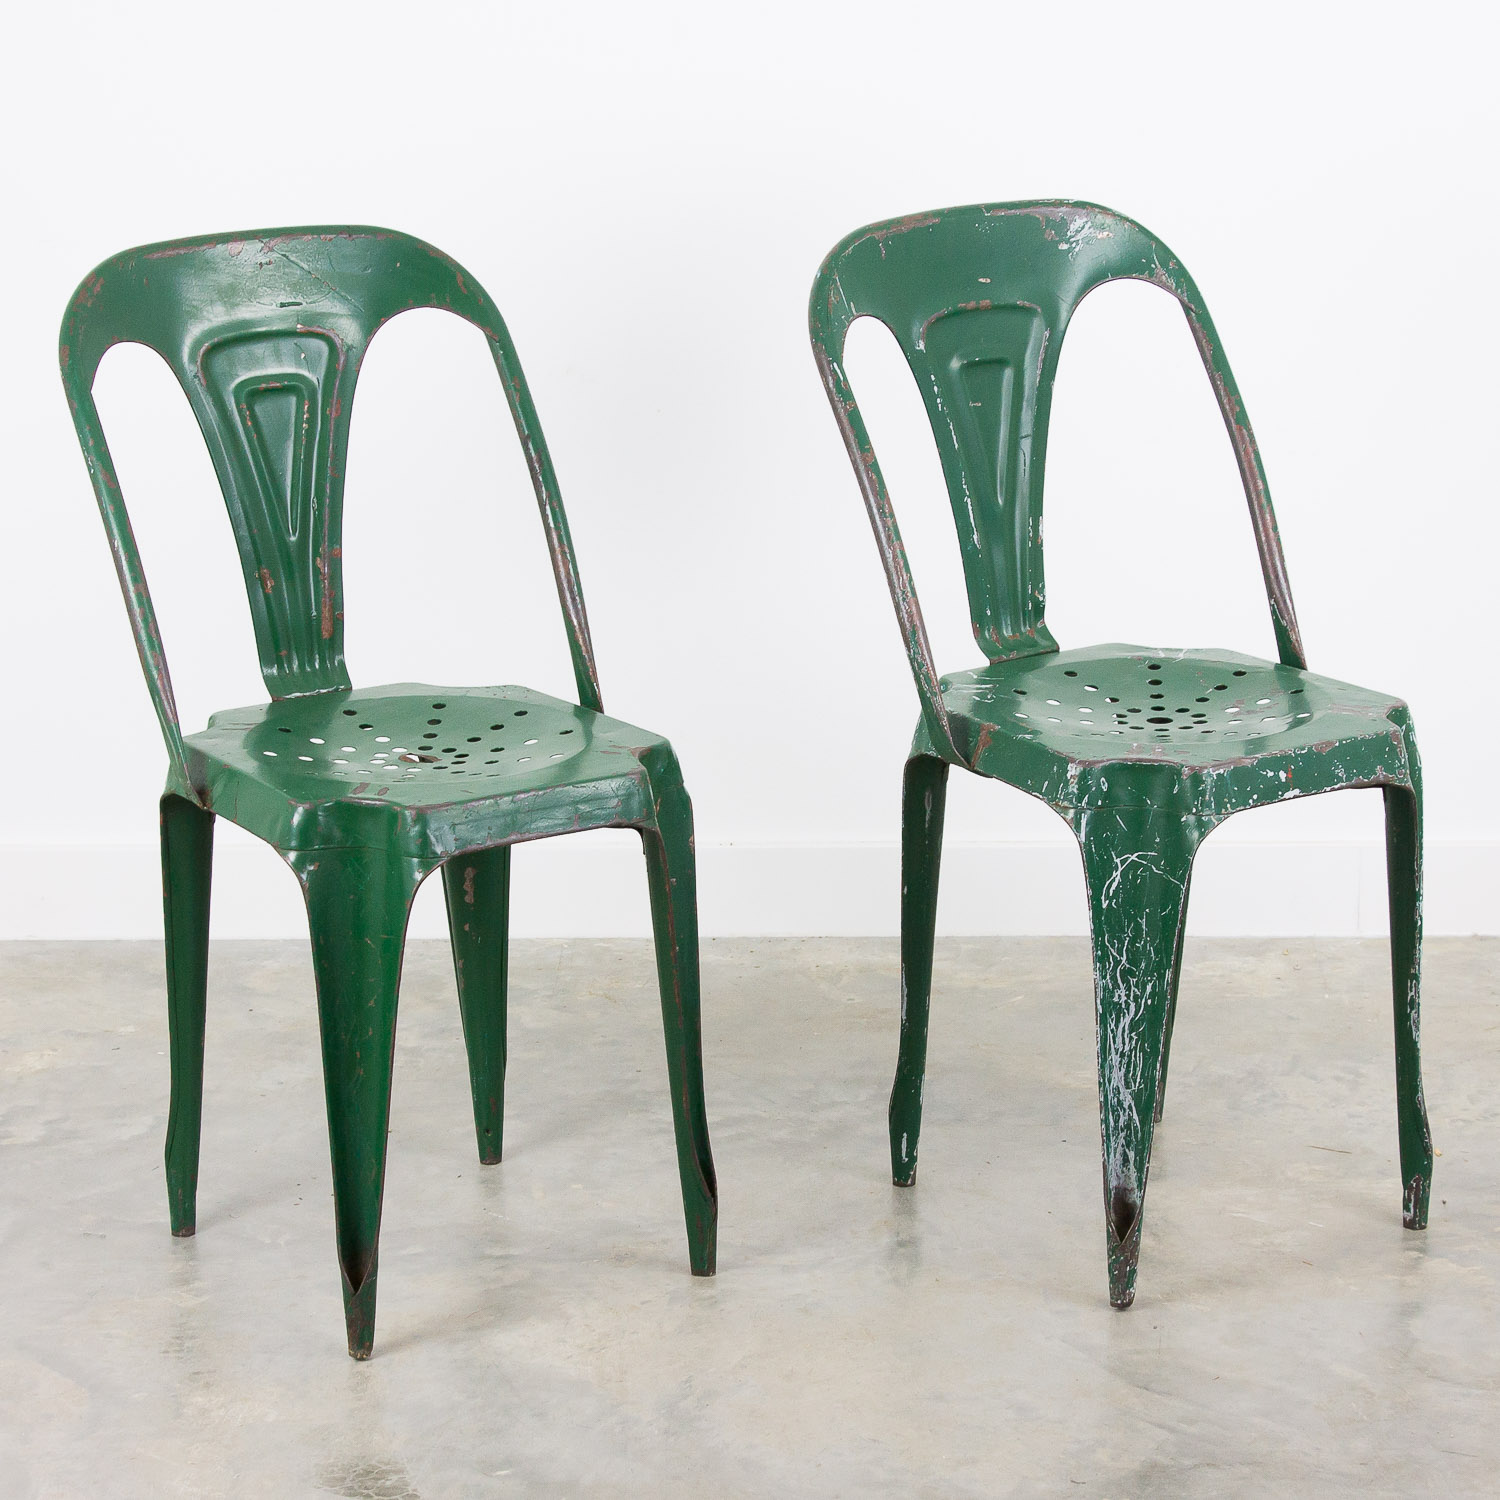 Set of 2 Multipl's chairs by Joseph Mathieu